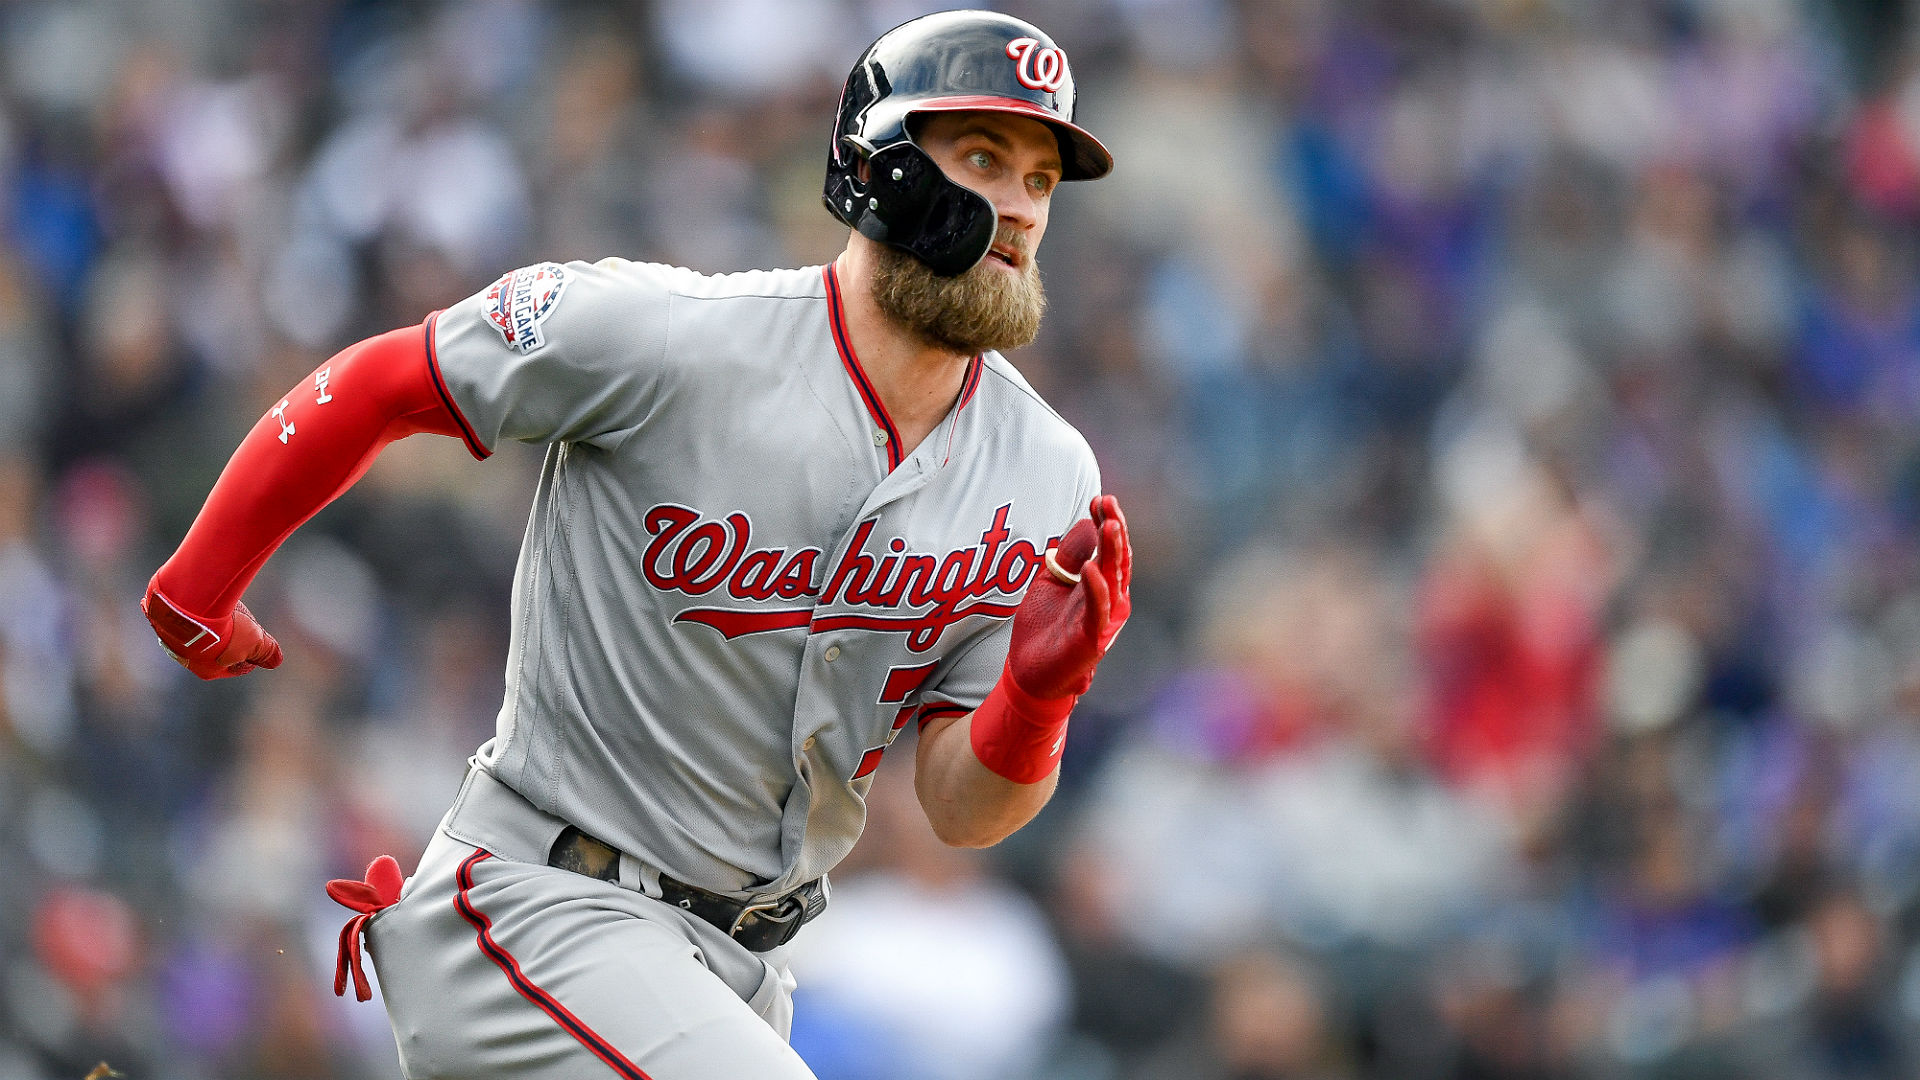 Harper isn't signing with Cubs